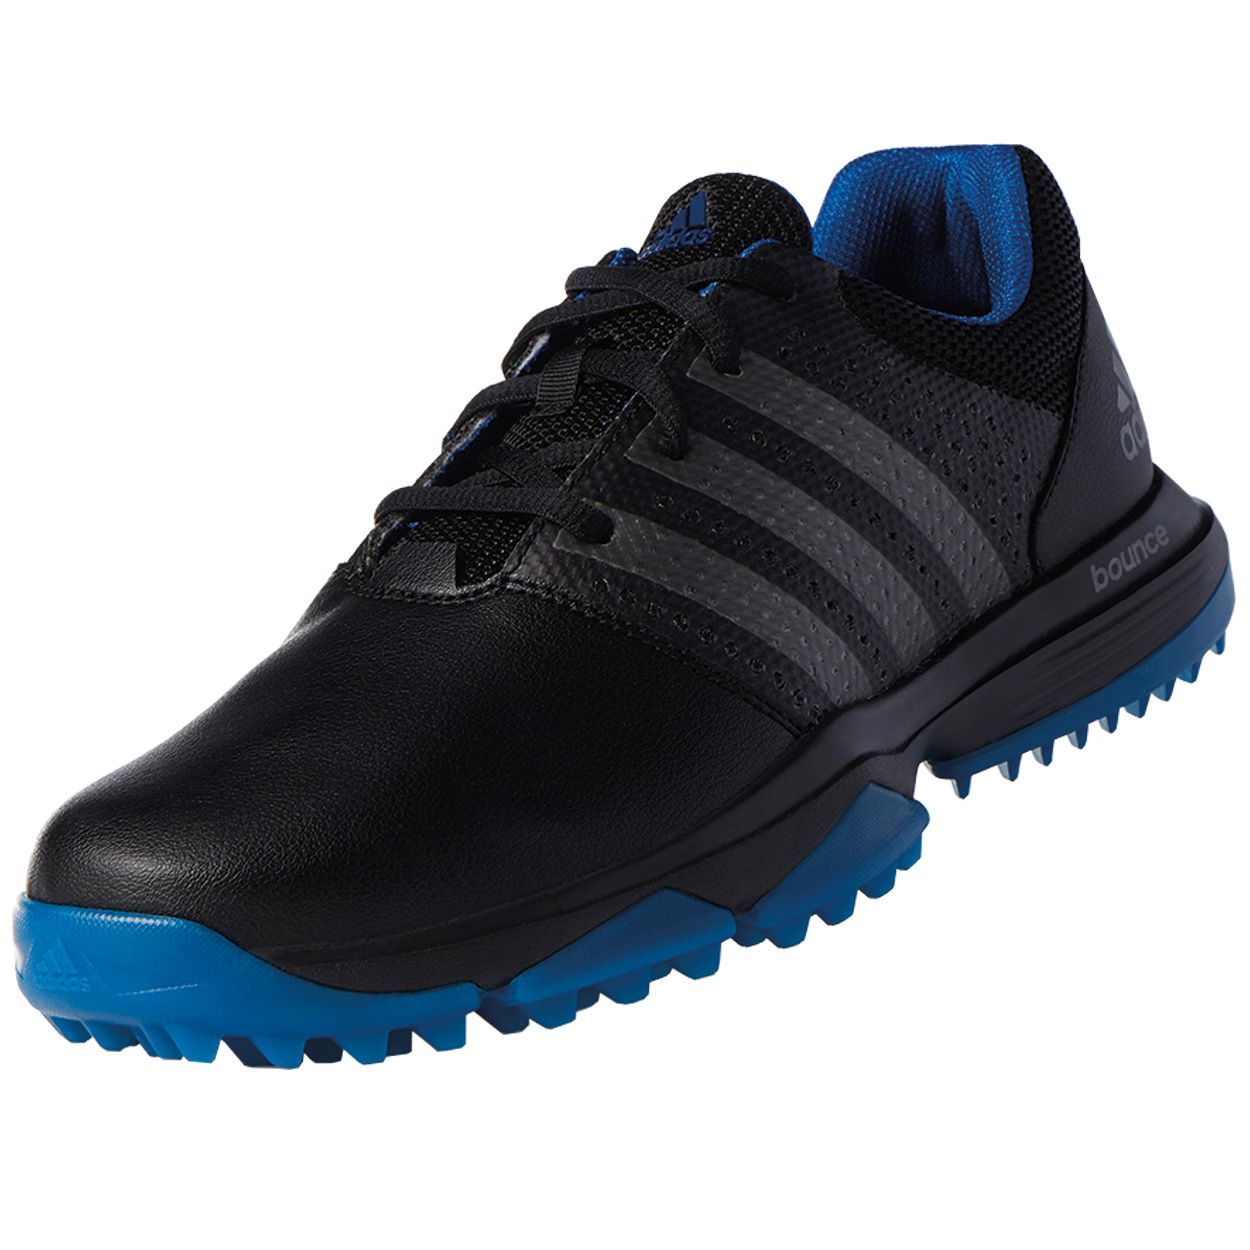 on sale 8894e 55f11 Adidas 360 Traxion Golf Shoes